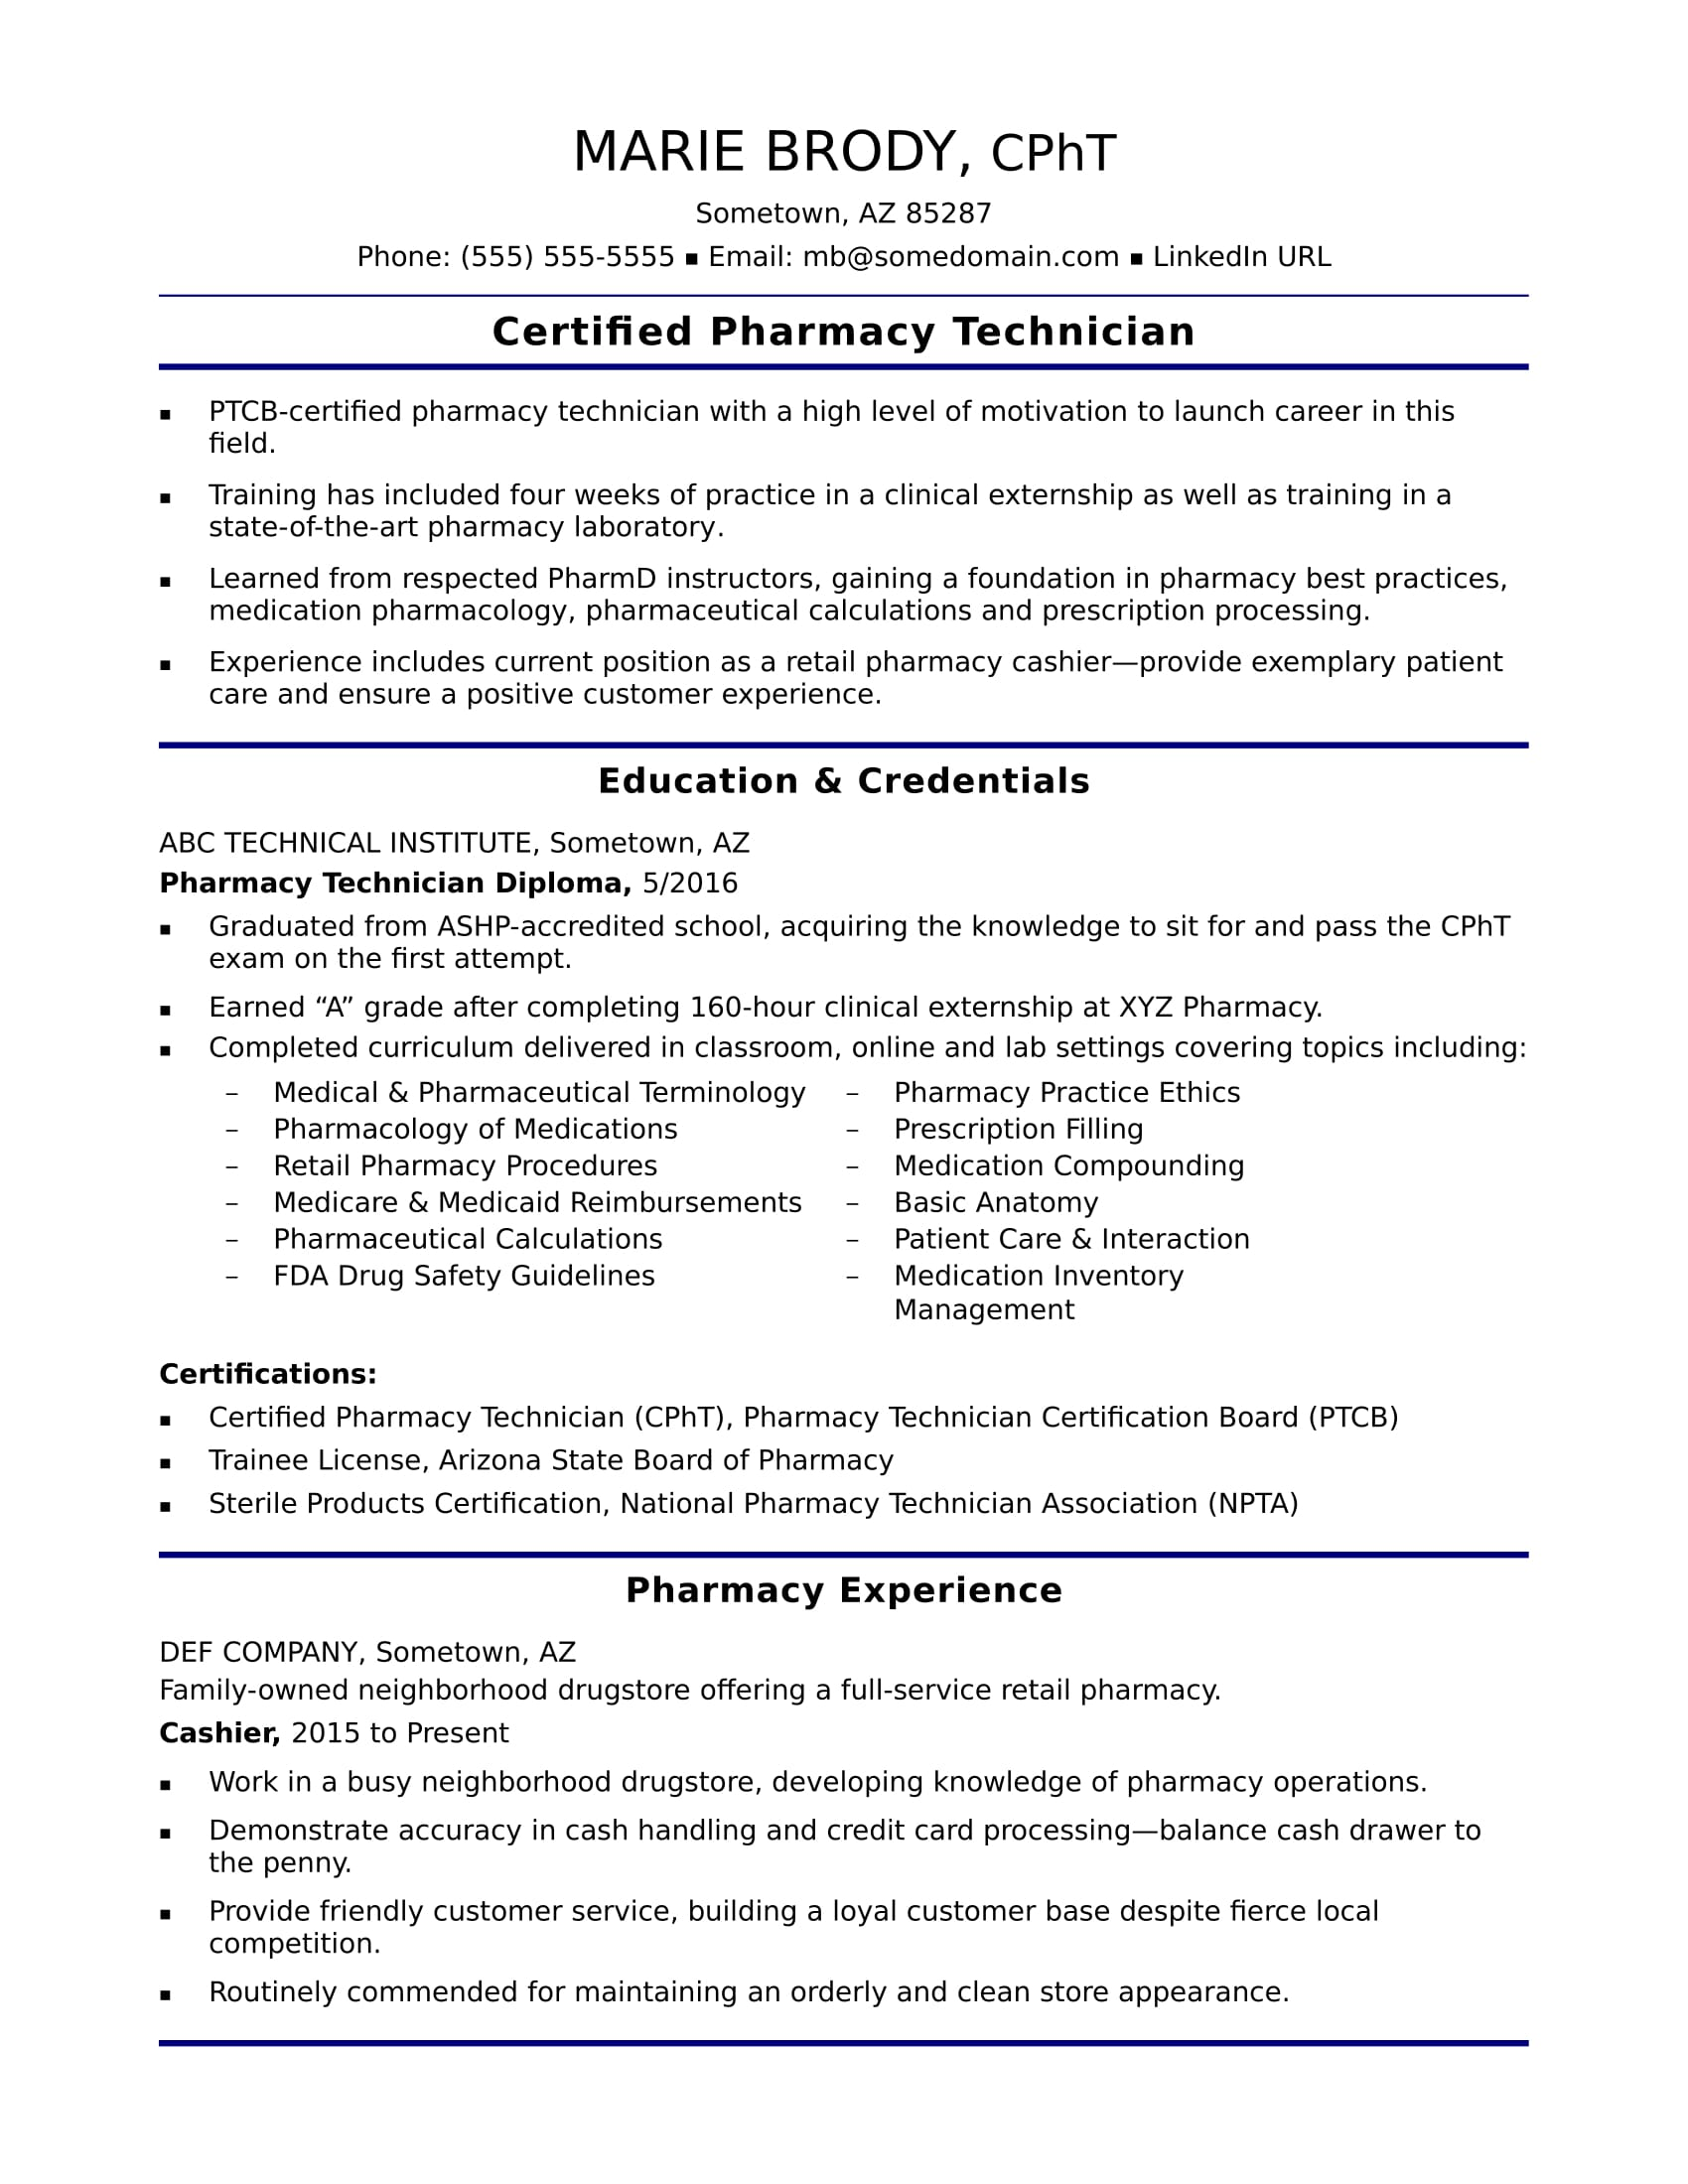 Superior Sample Resume For An Entry Level Pharmacy Technician Inside Sample Pharmacy Technician Resume